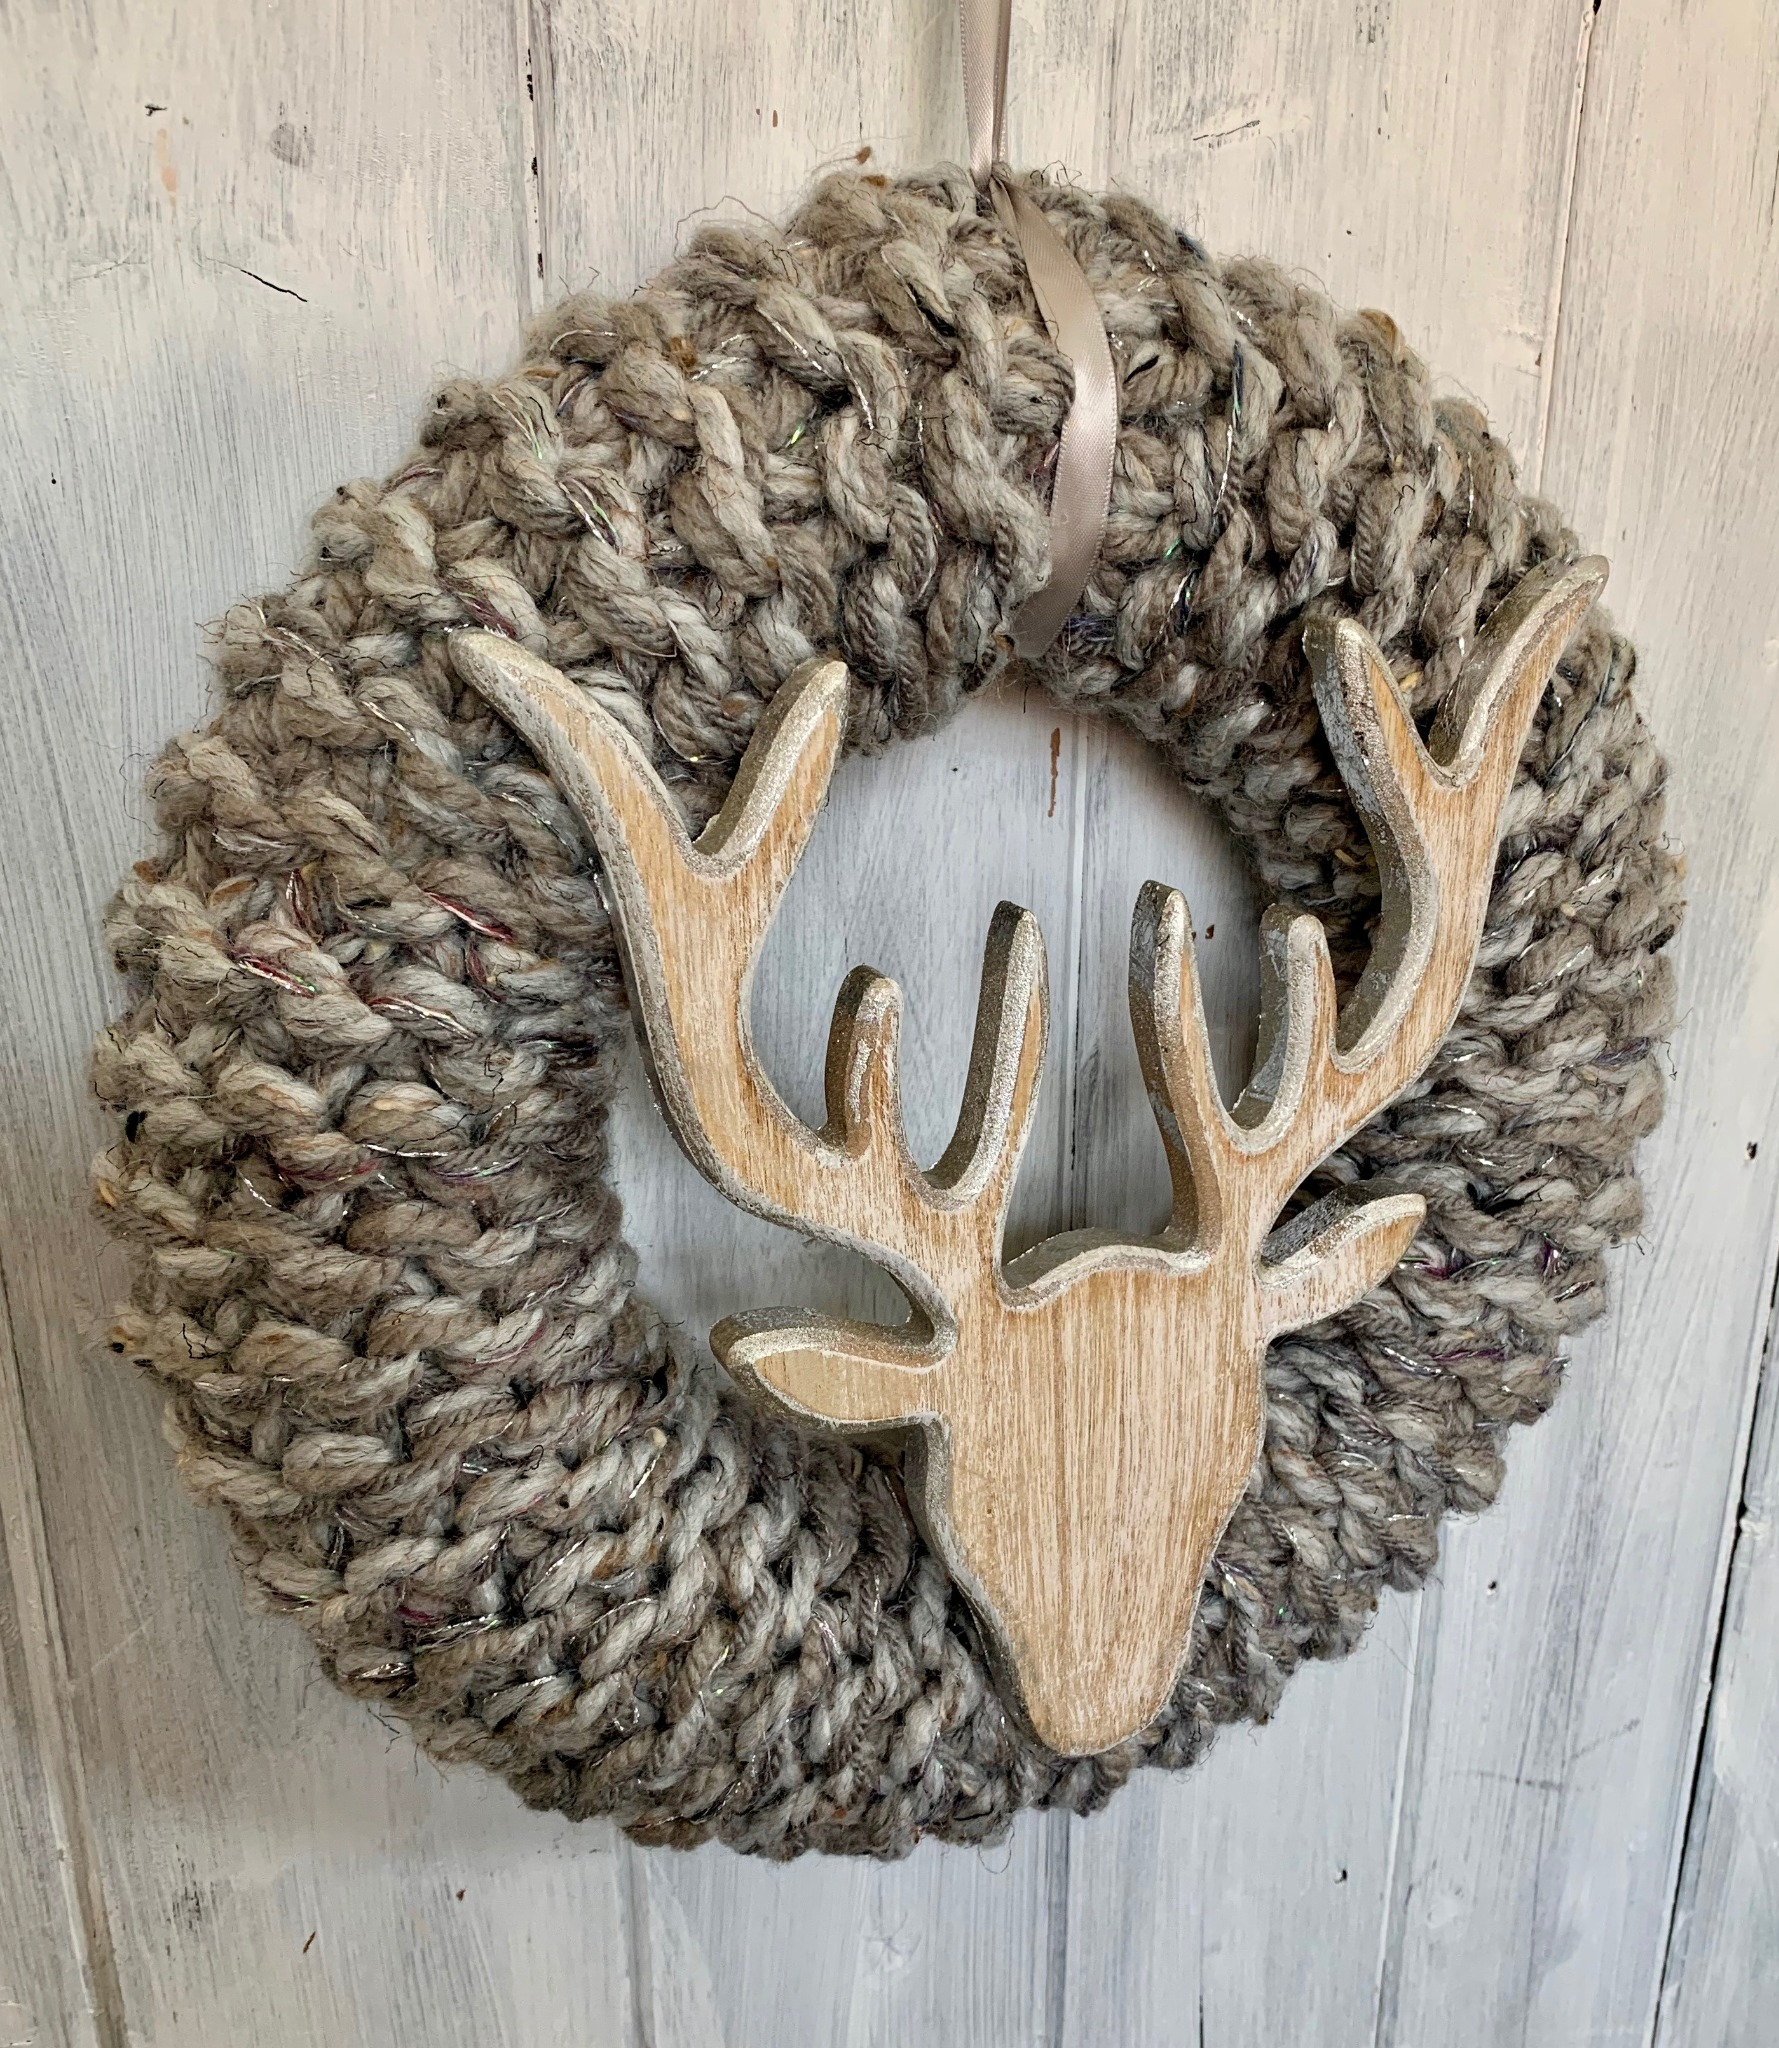 Large Hand knitted Stags Head Christmas Wreath.